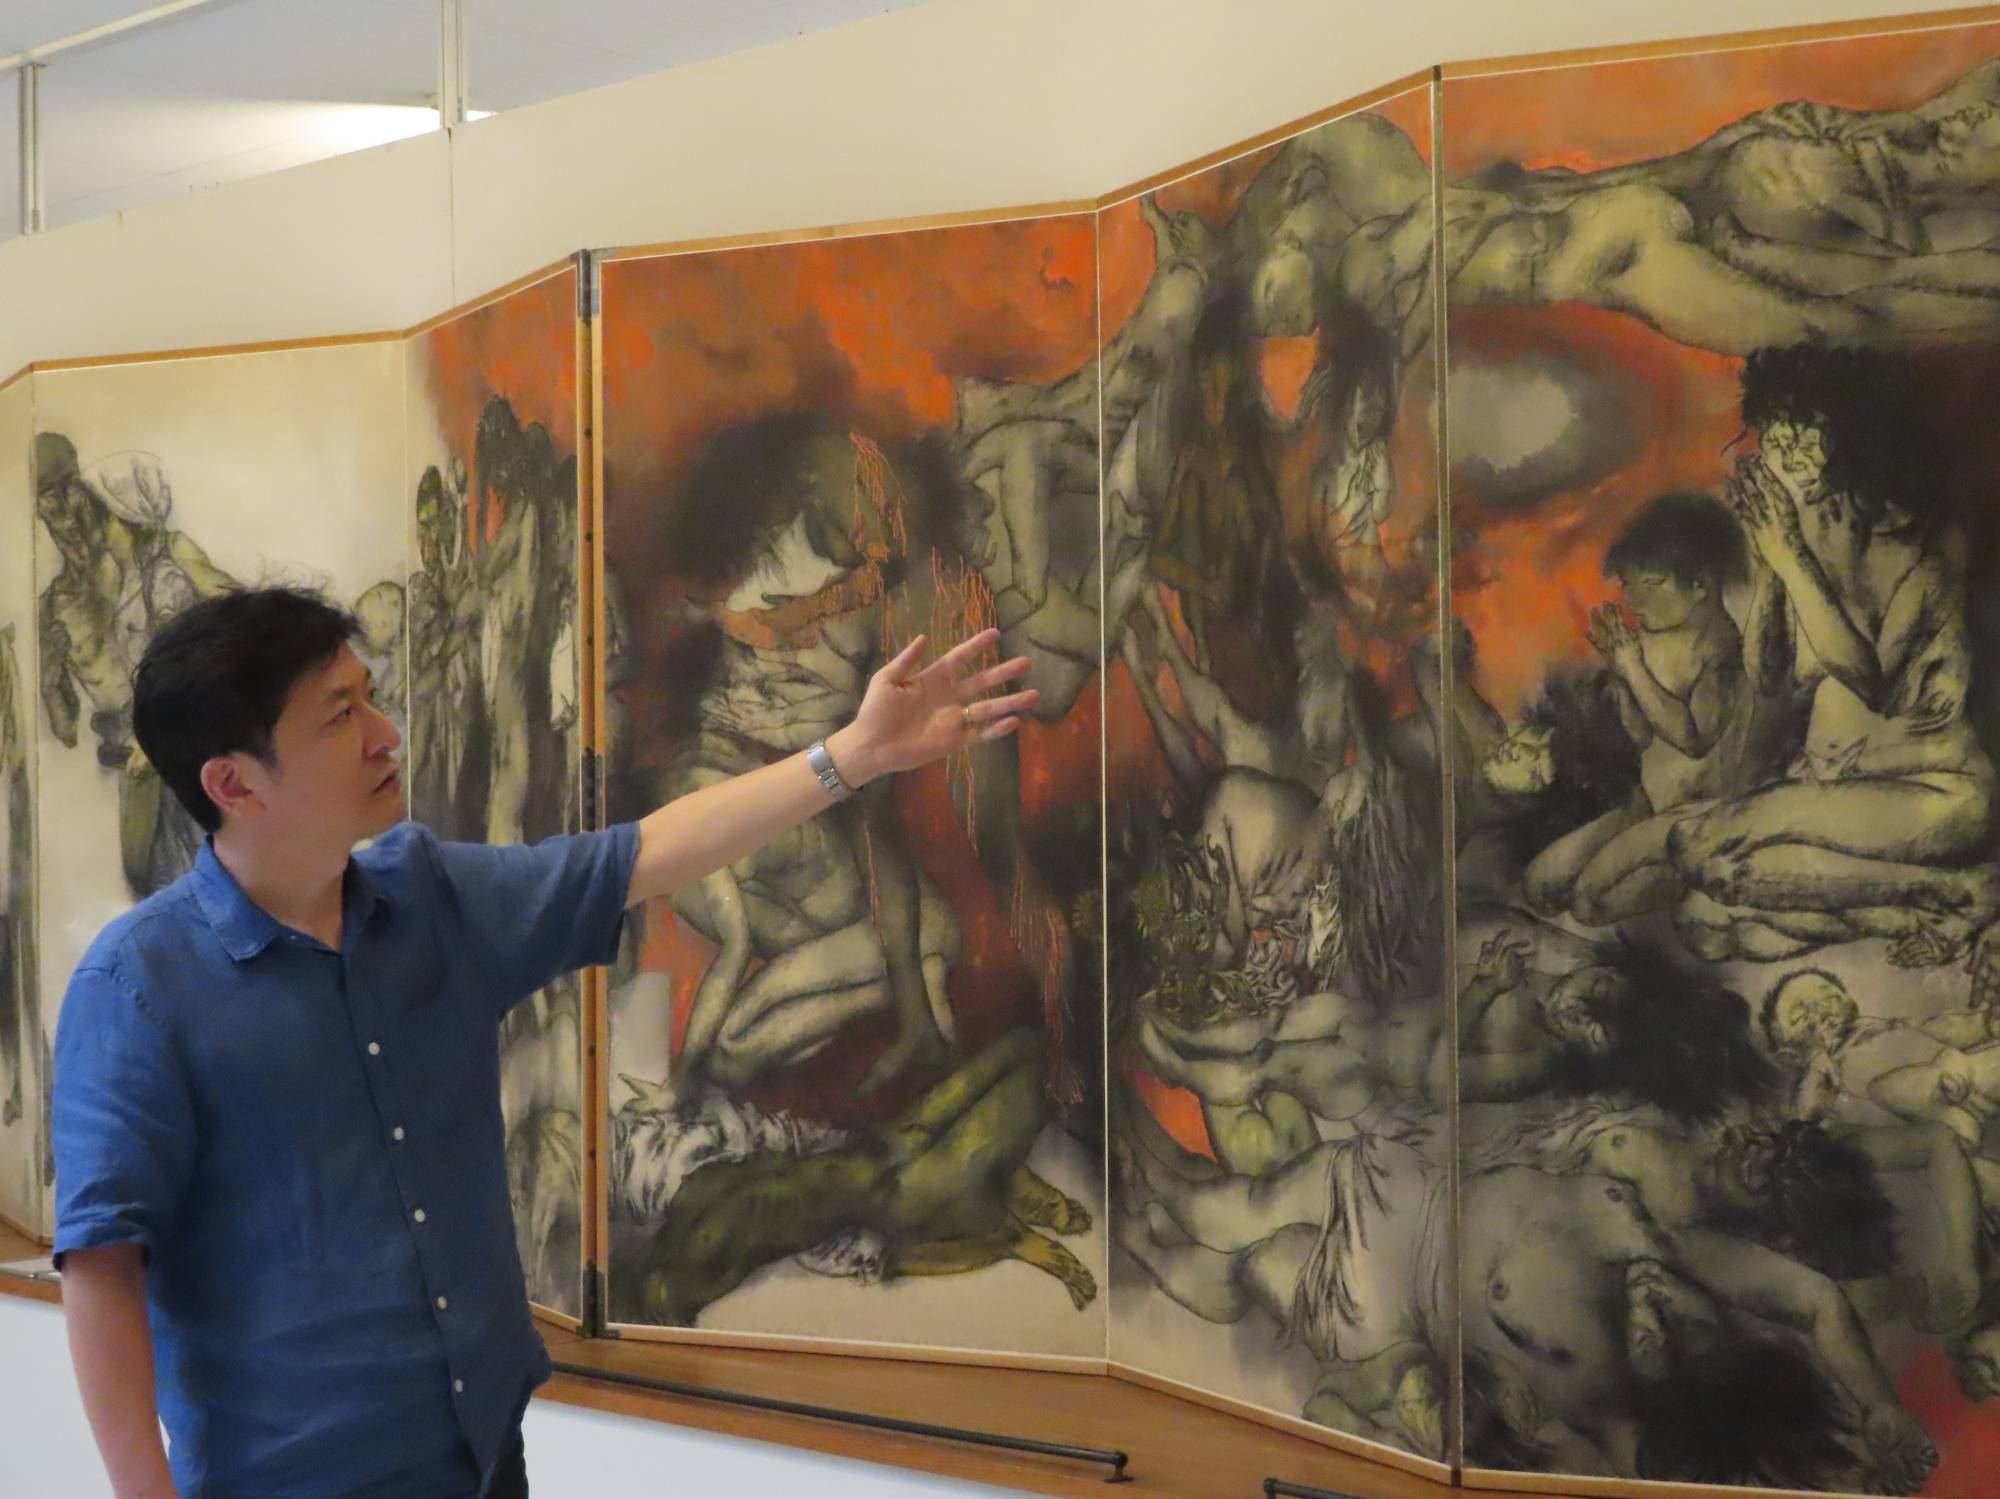 Yukinori Okamura says gaining support from overseas is crucial to the future and survival of the Maruki Gallery for the Hiroshima Panels. | KYODO